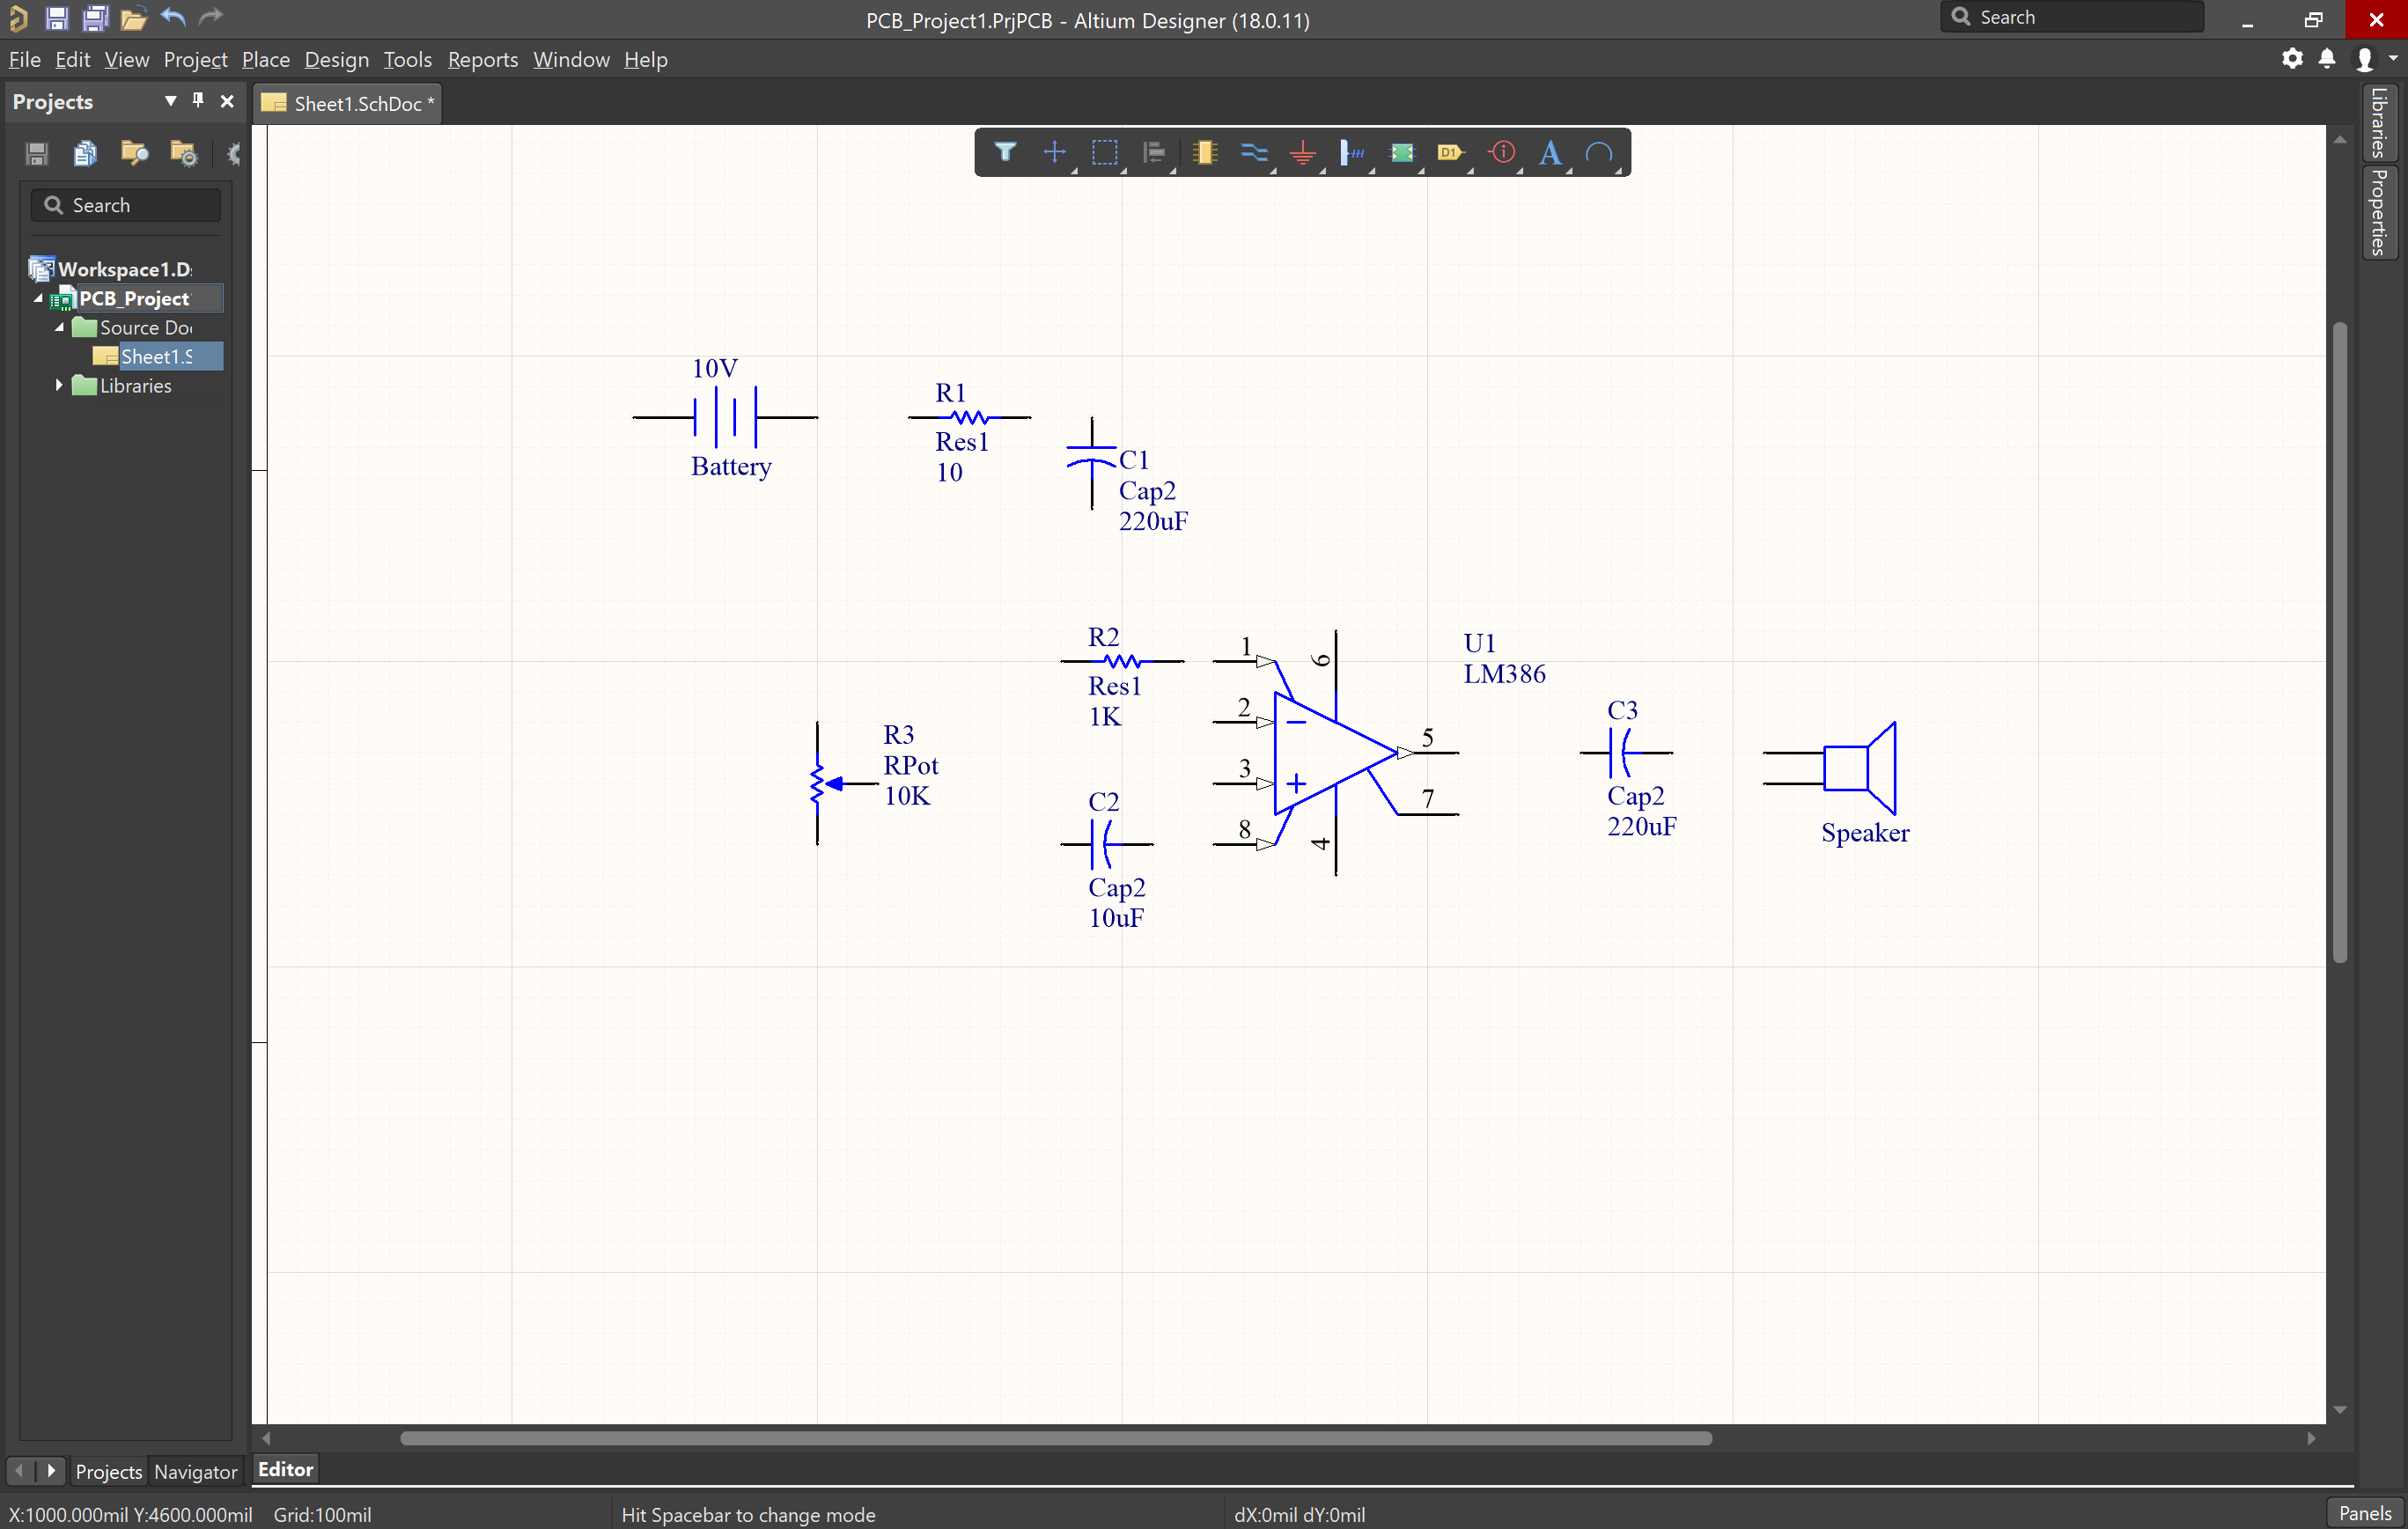 Picture of schematic with components in Altium